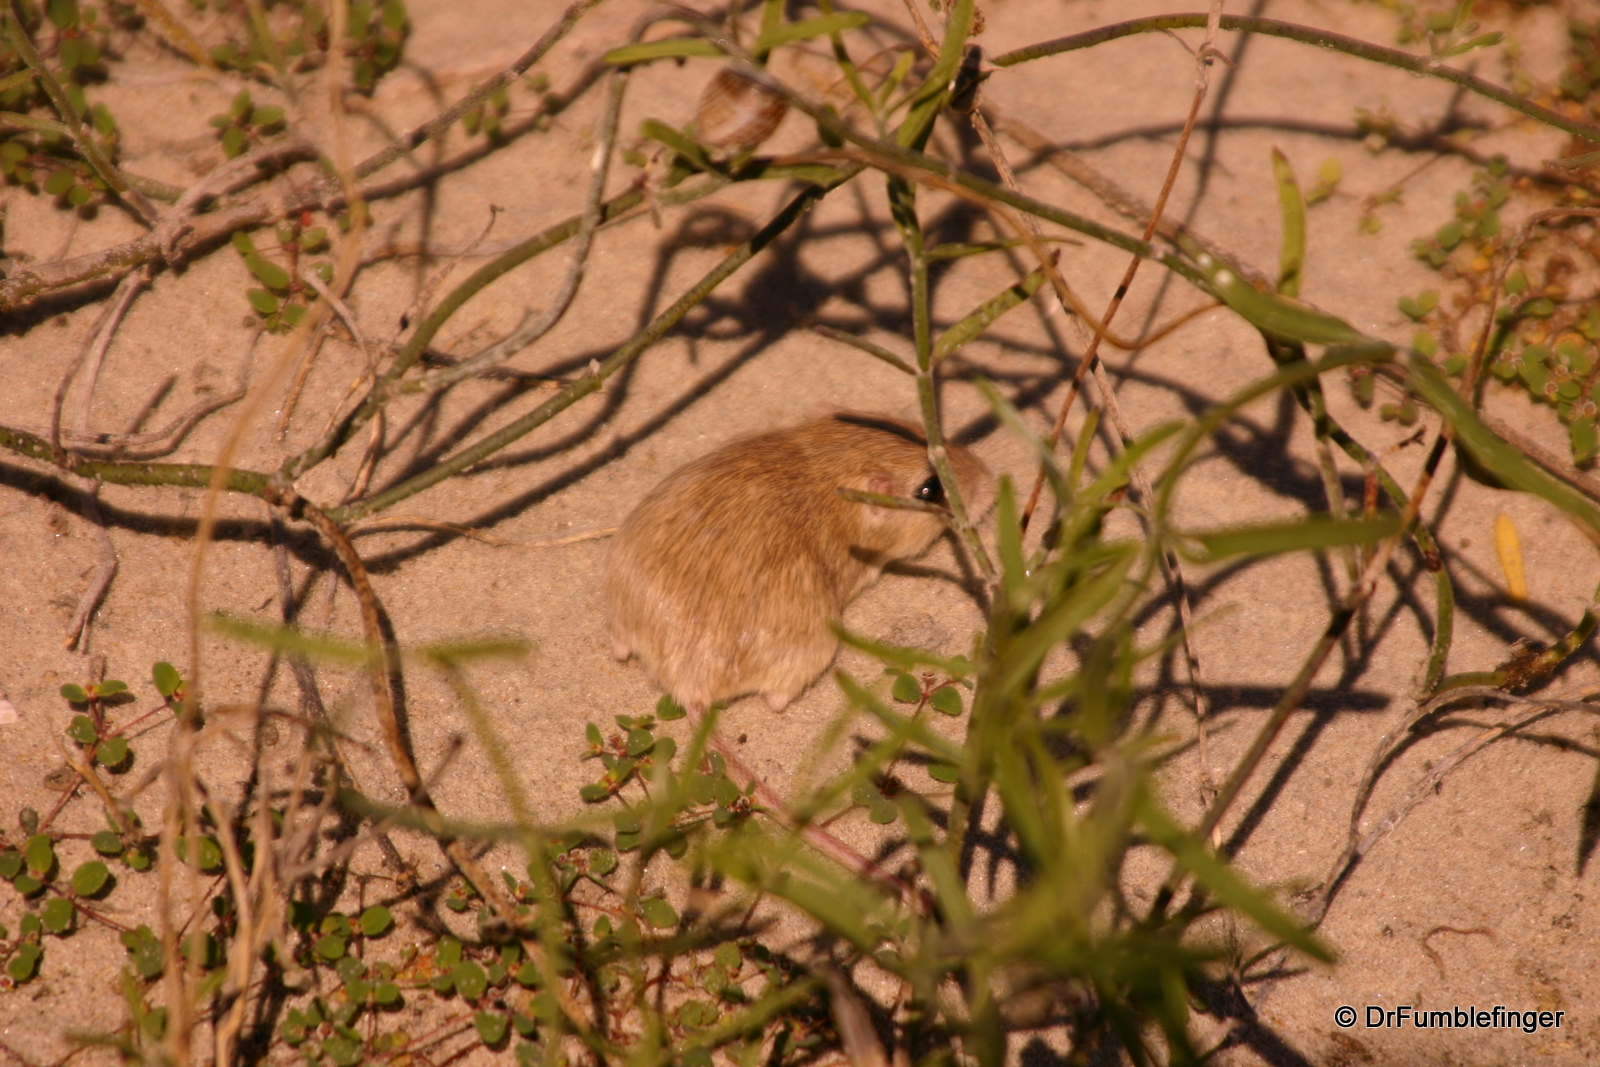 Small rodent trying to hide, Magdalena Bay